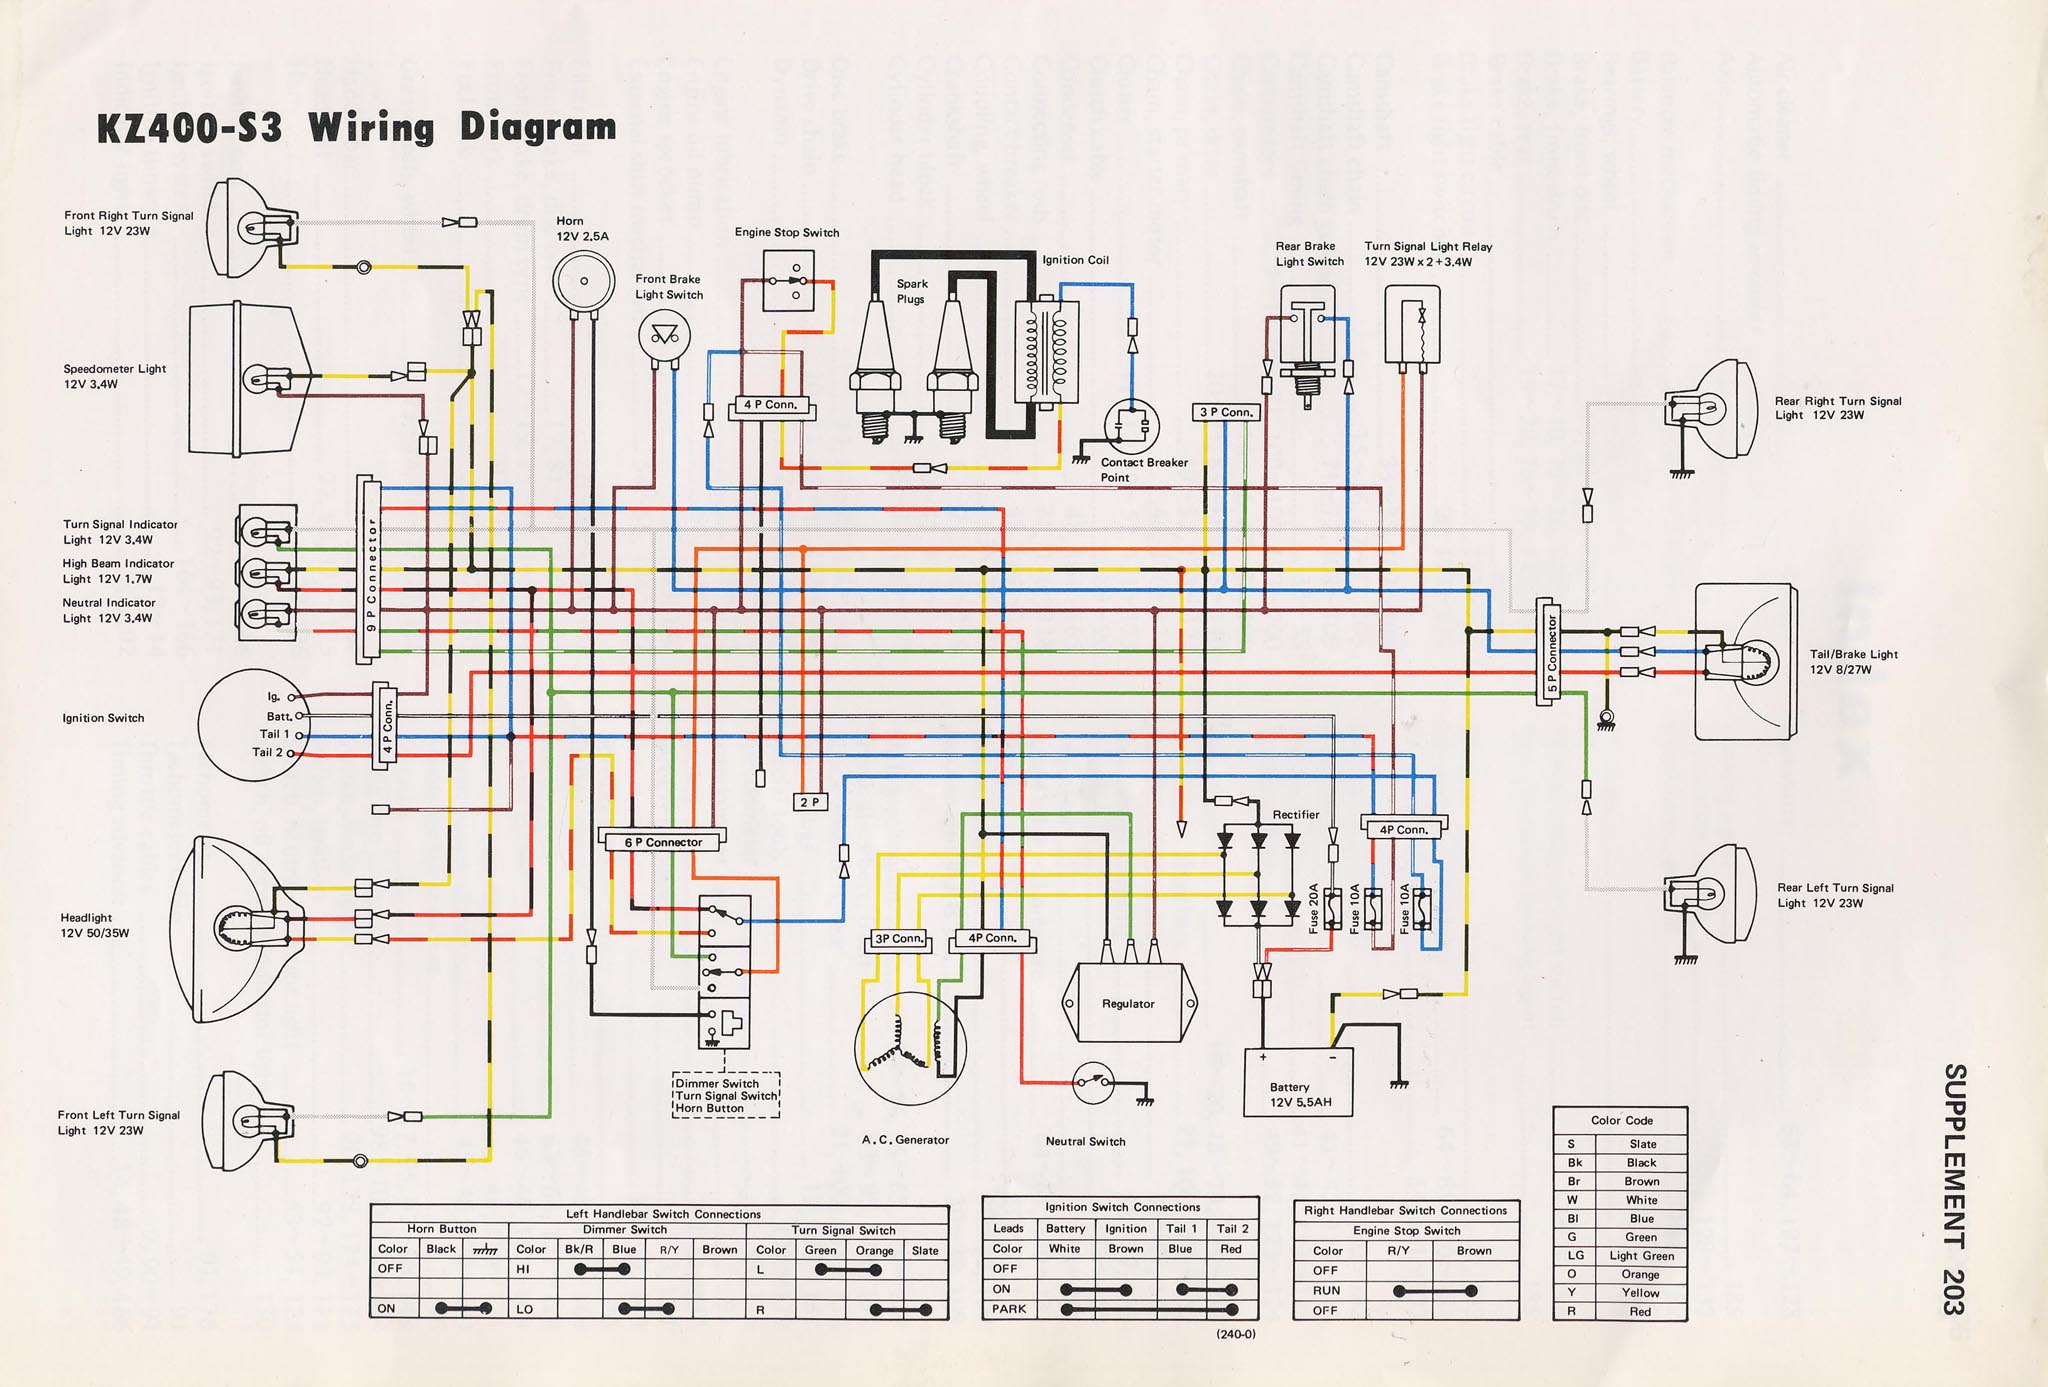 Swell Kz440 Wiring Diagram Wiring Diagram Wiring 101 Orsalhahutechinfo